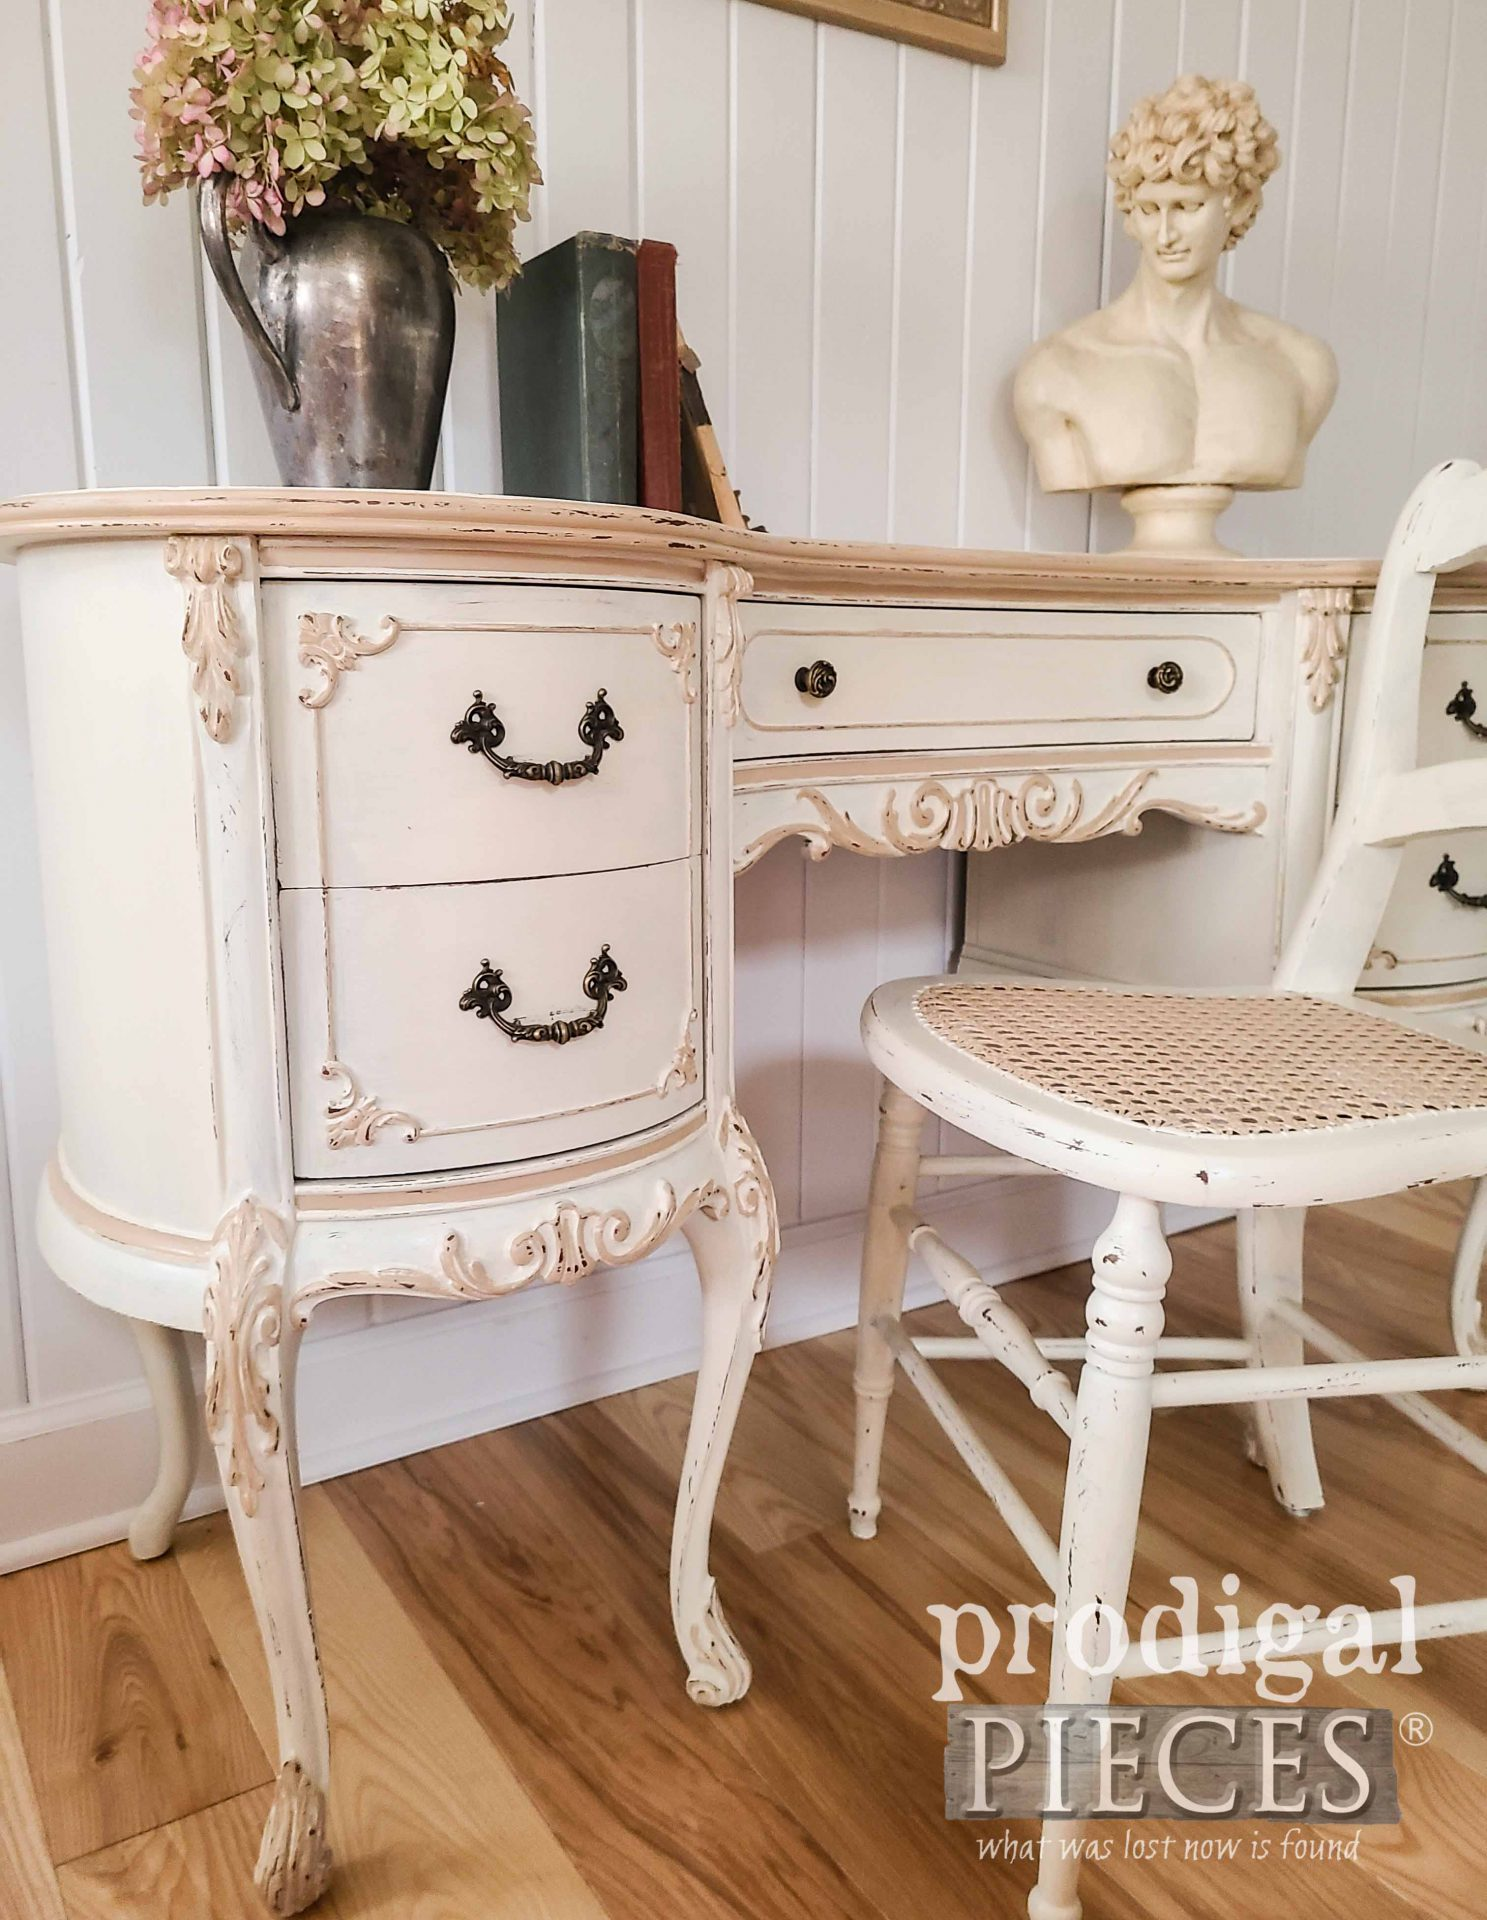 Vintage Kidney Desk Drawers on French Provincial Desk by Larissa of Prodigal Pieces | prodigalpieces.com #prodigalpieces #shabbychic #furniture #home